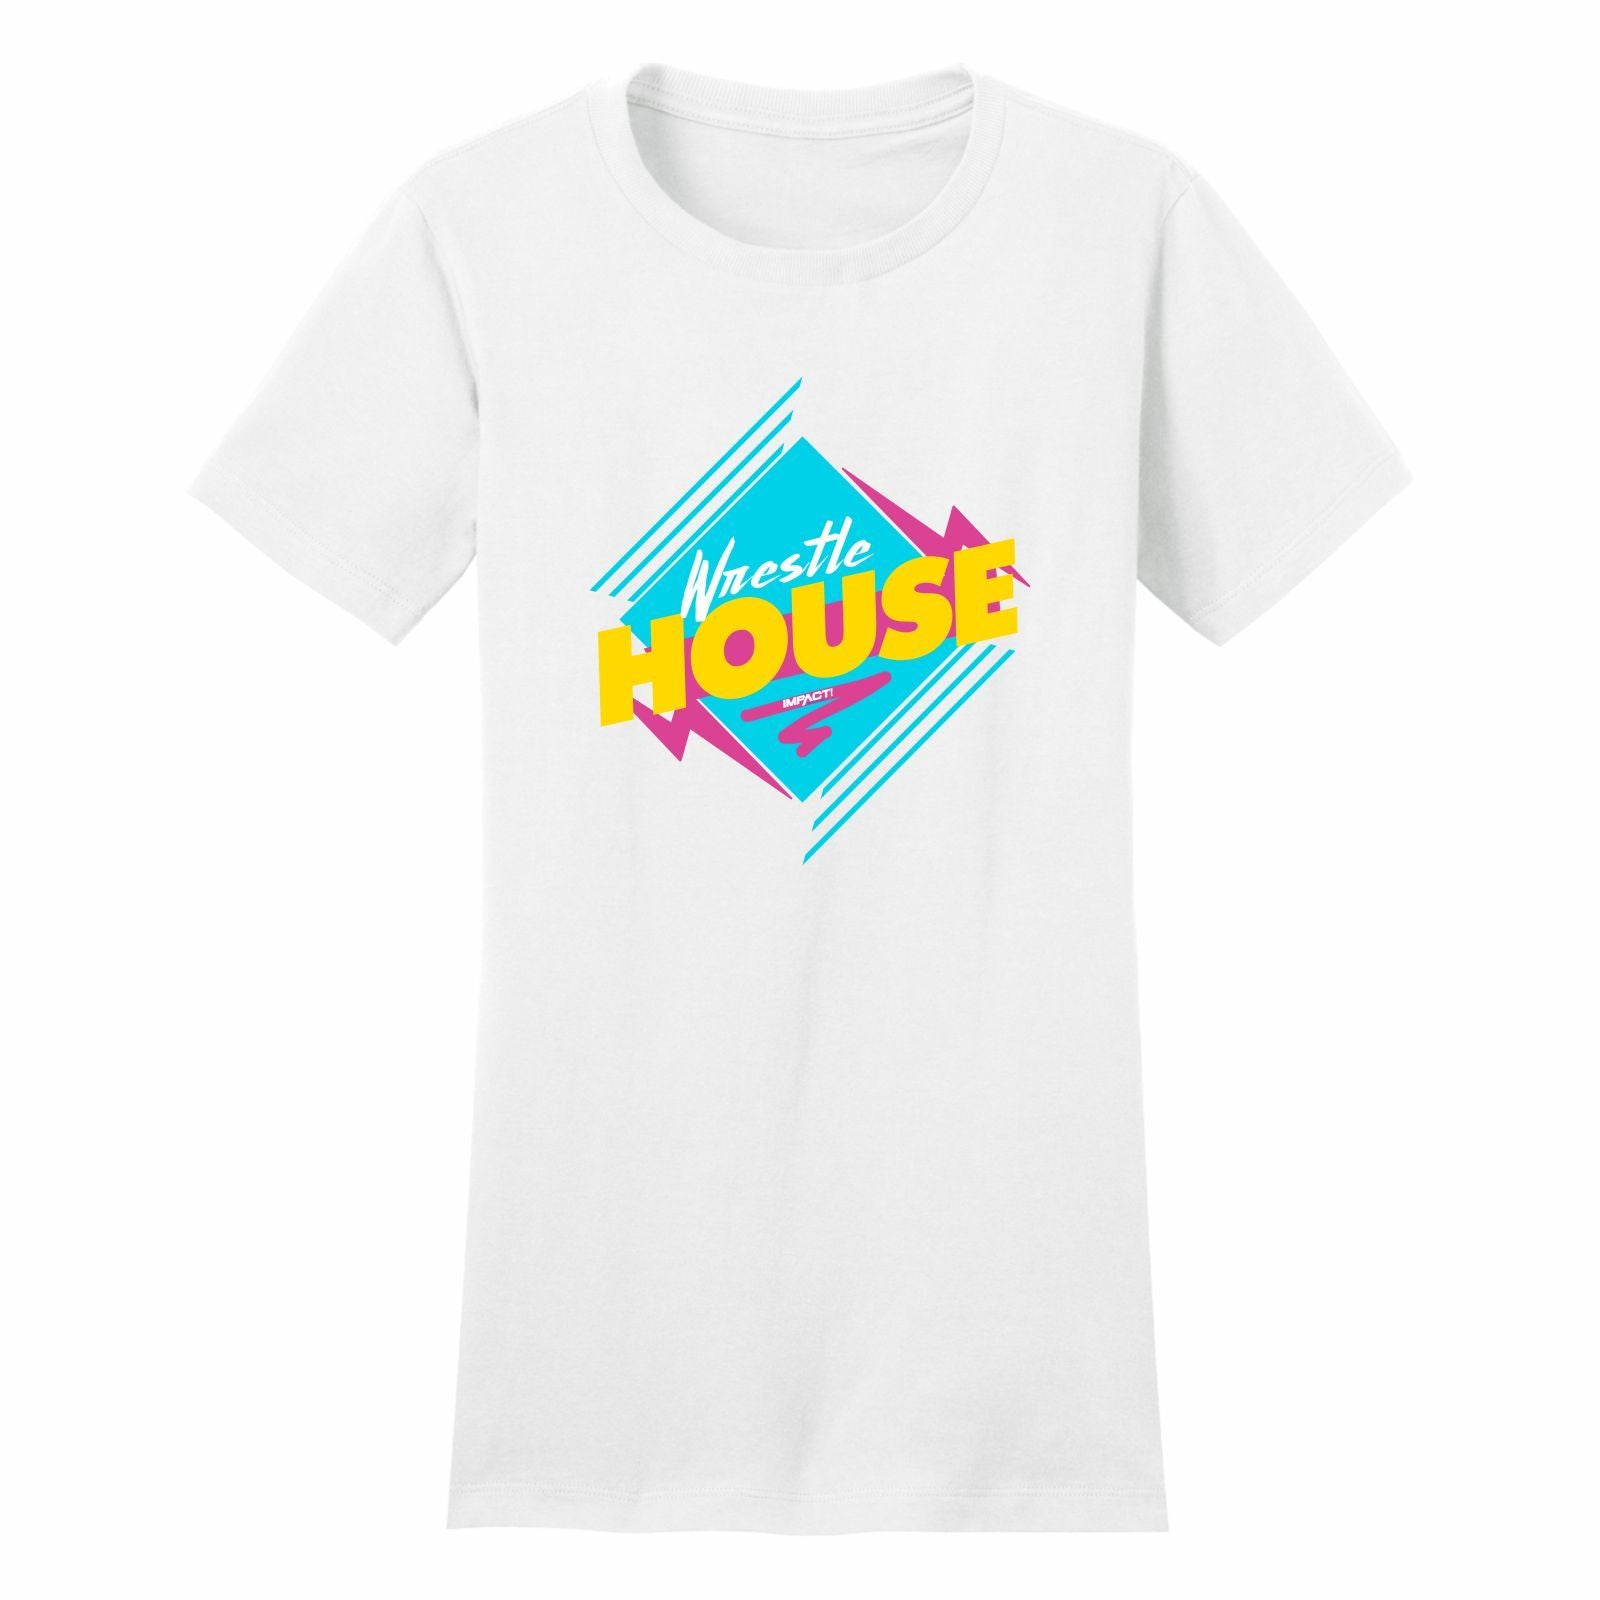 Wrestle House Short Sleeve Women's Tee